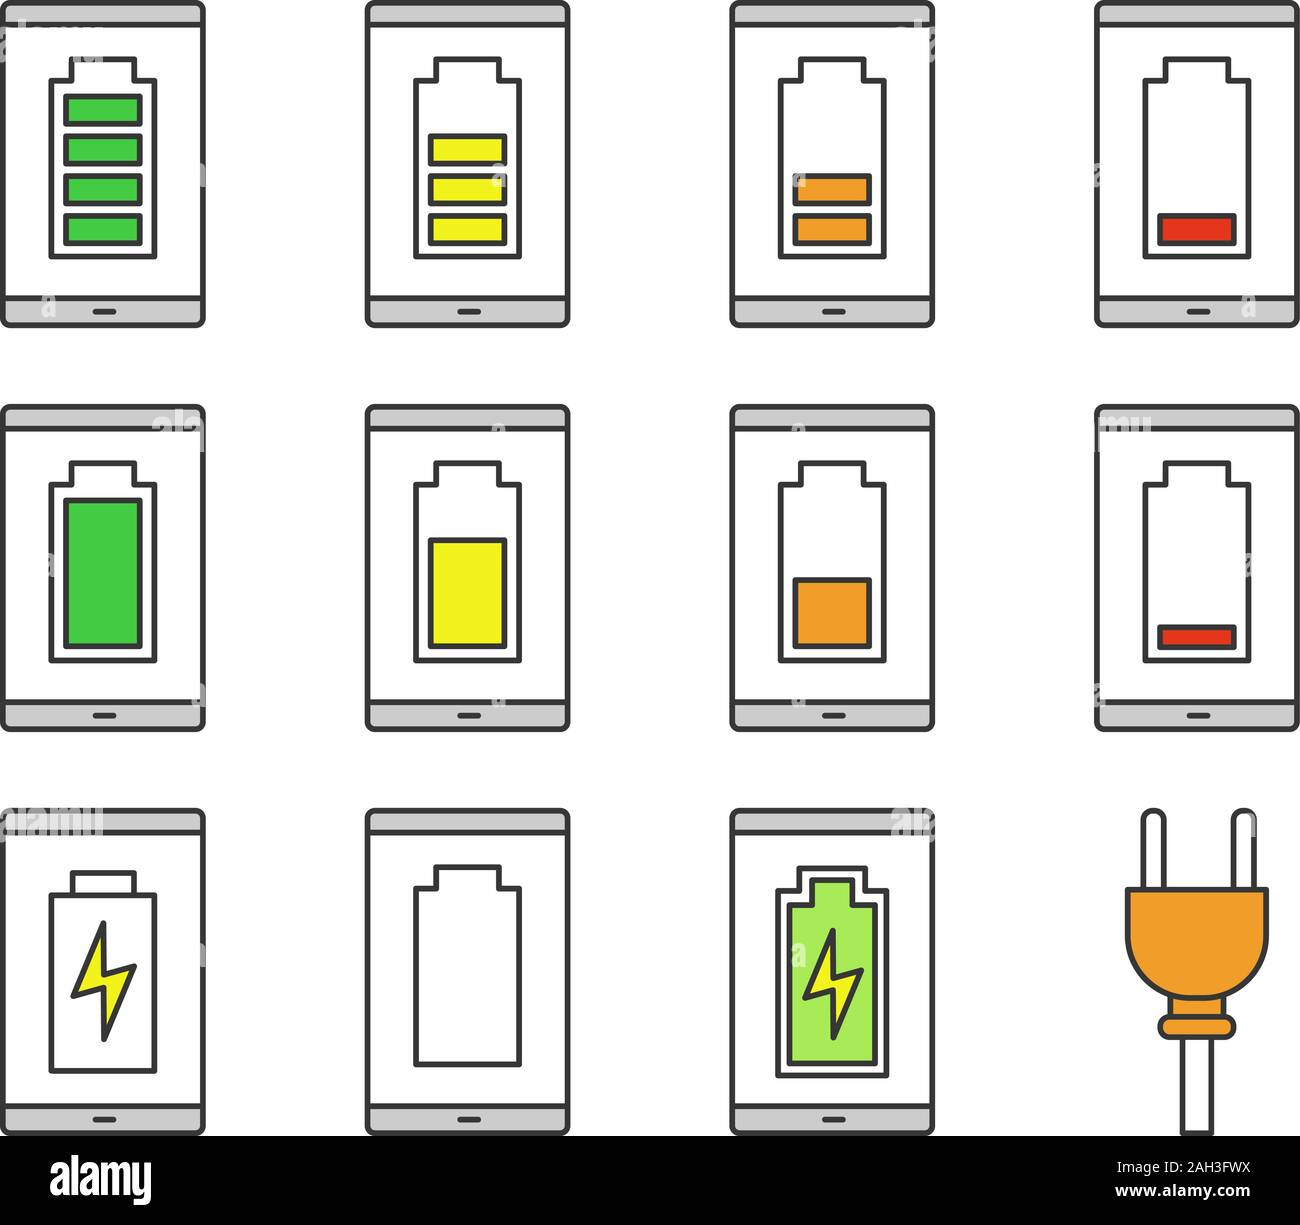 Smartphone Battery Charging Color Icons Set Mobile Phone Battery Level Indicator Middle Low And High Charge Isolated Vector Illustrations Stock Vector Image Art Alamy